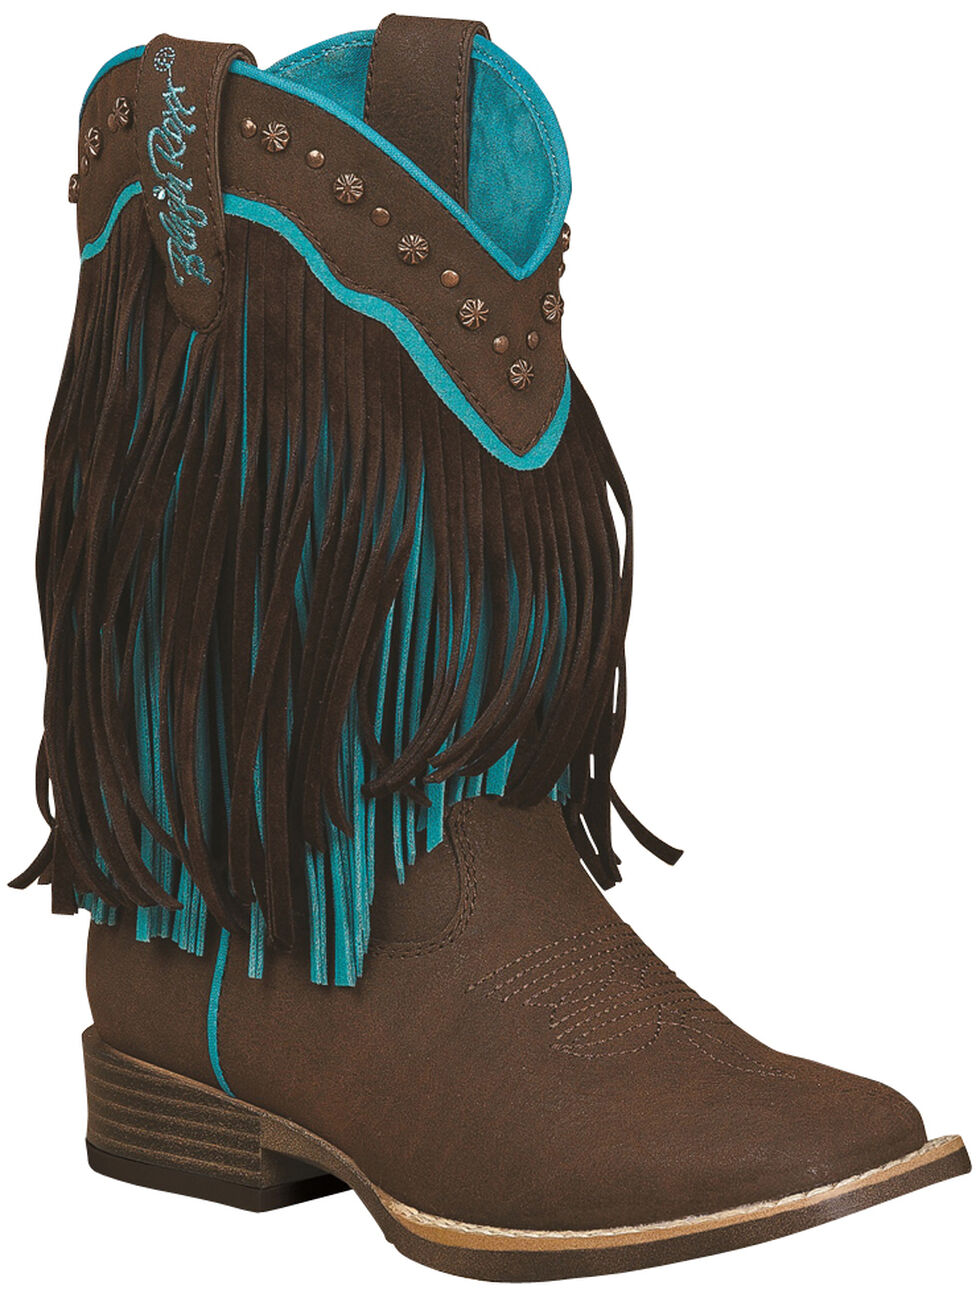 Blazin Roxx Toddler Girls' Candace Zipper Fringe Boots - Square Toe, Brown, hi-res